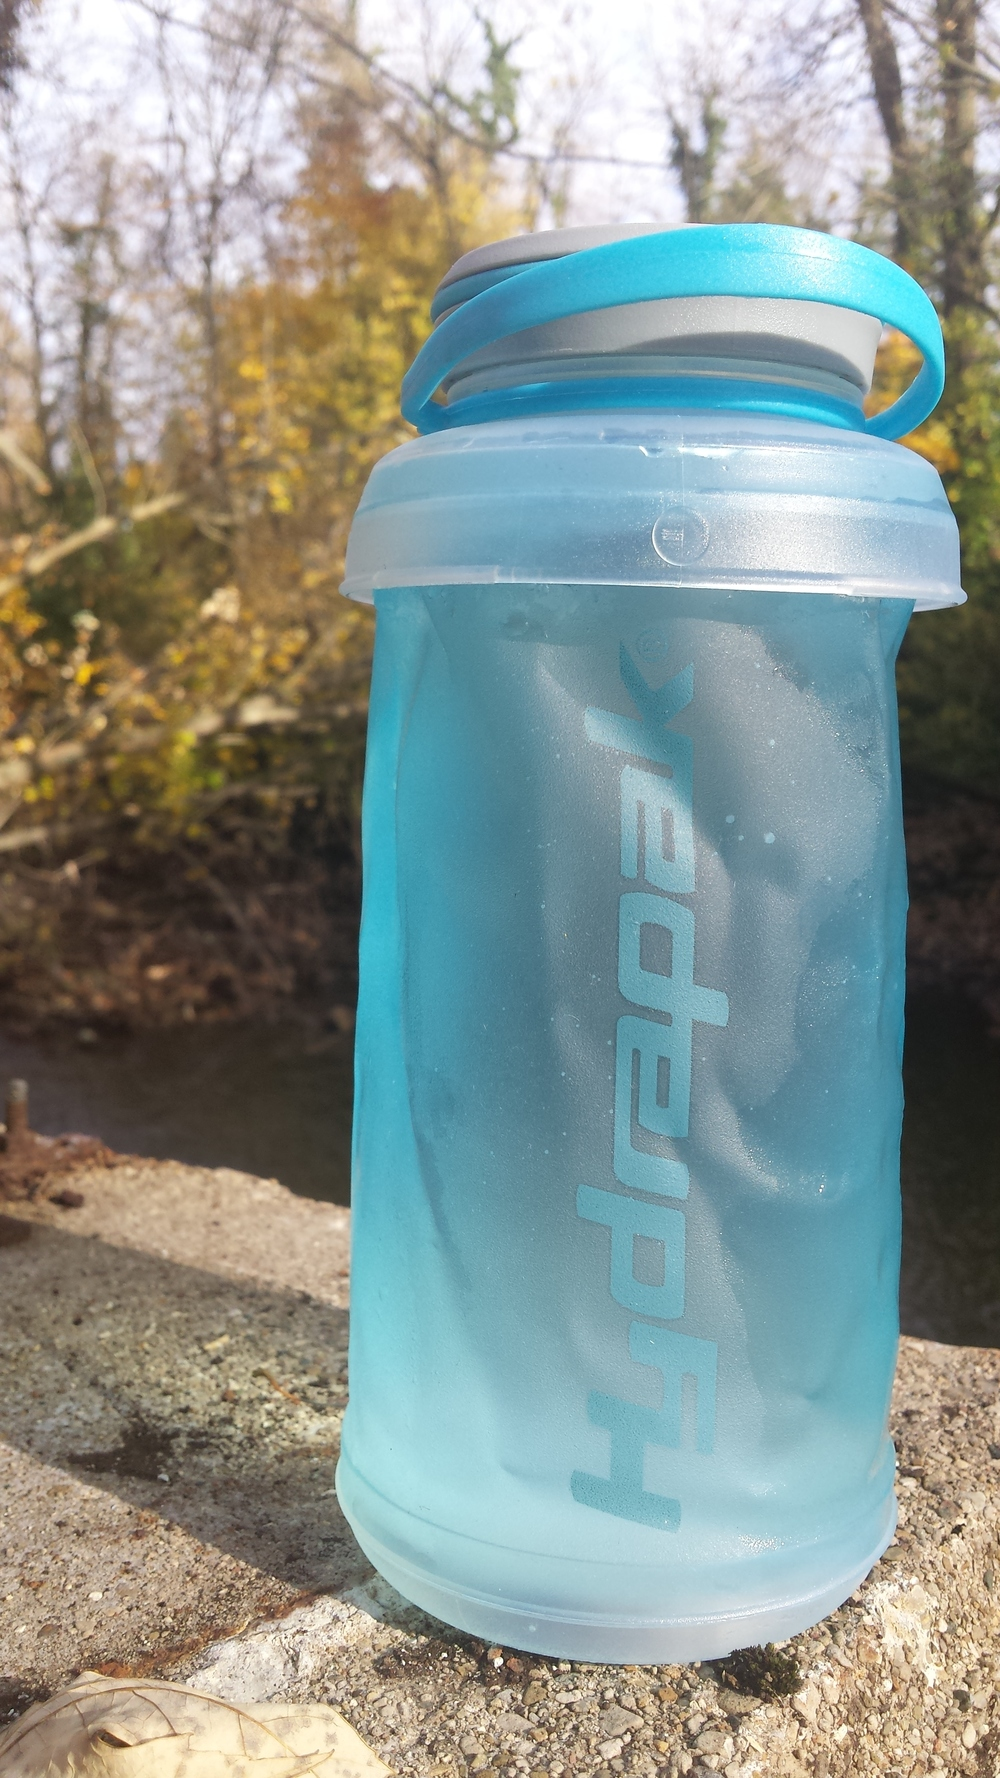 Hydrapak Stash 1 liter Collapsible Bottle Review